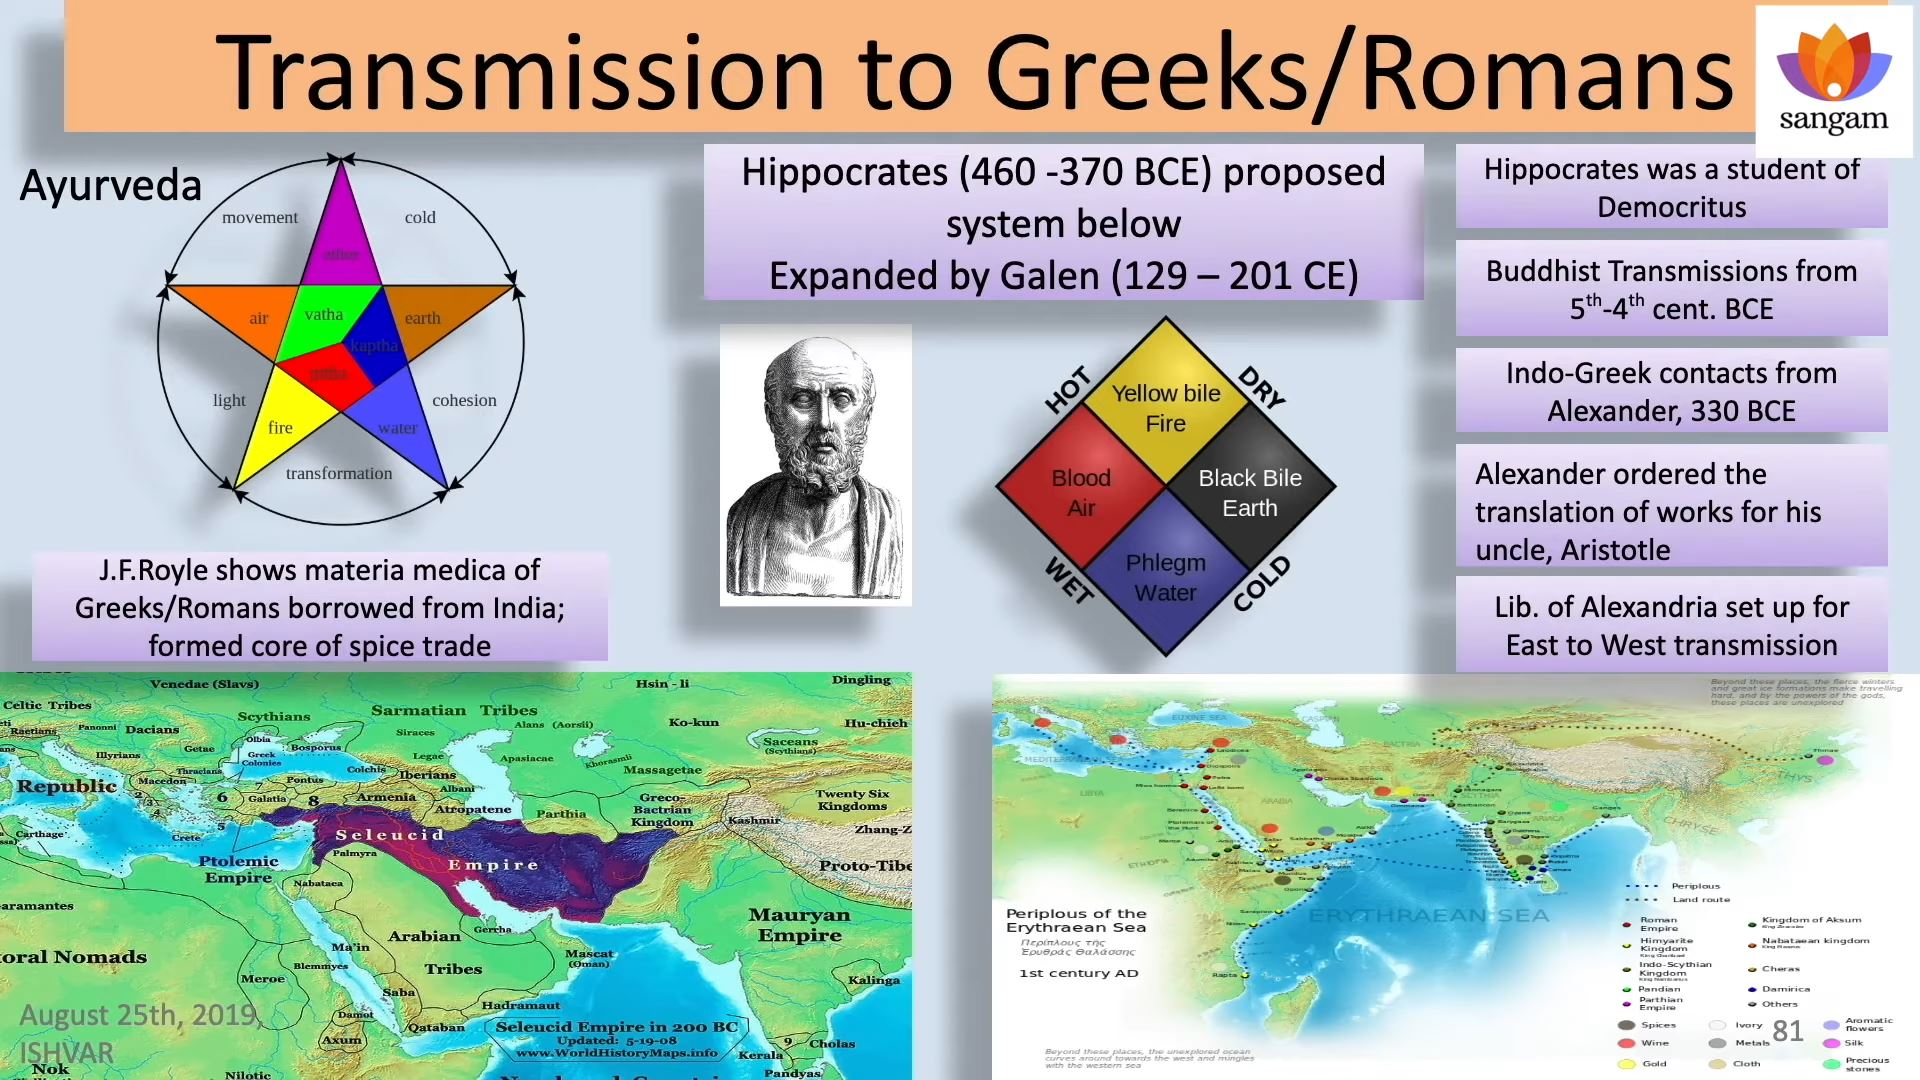 DHARMA and BHARAT2 and transfer of knowledge to greeks.JPG